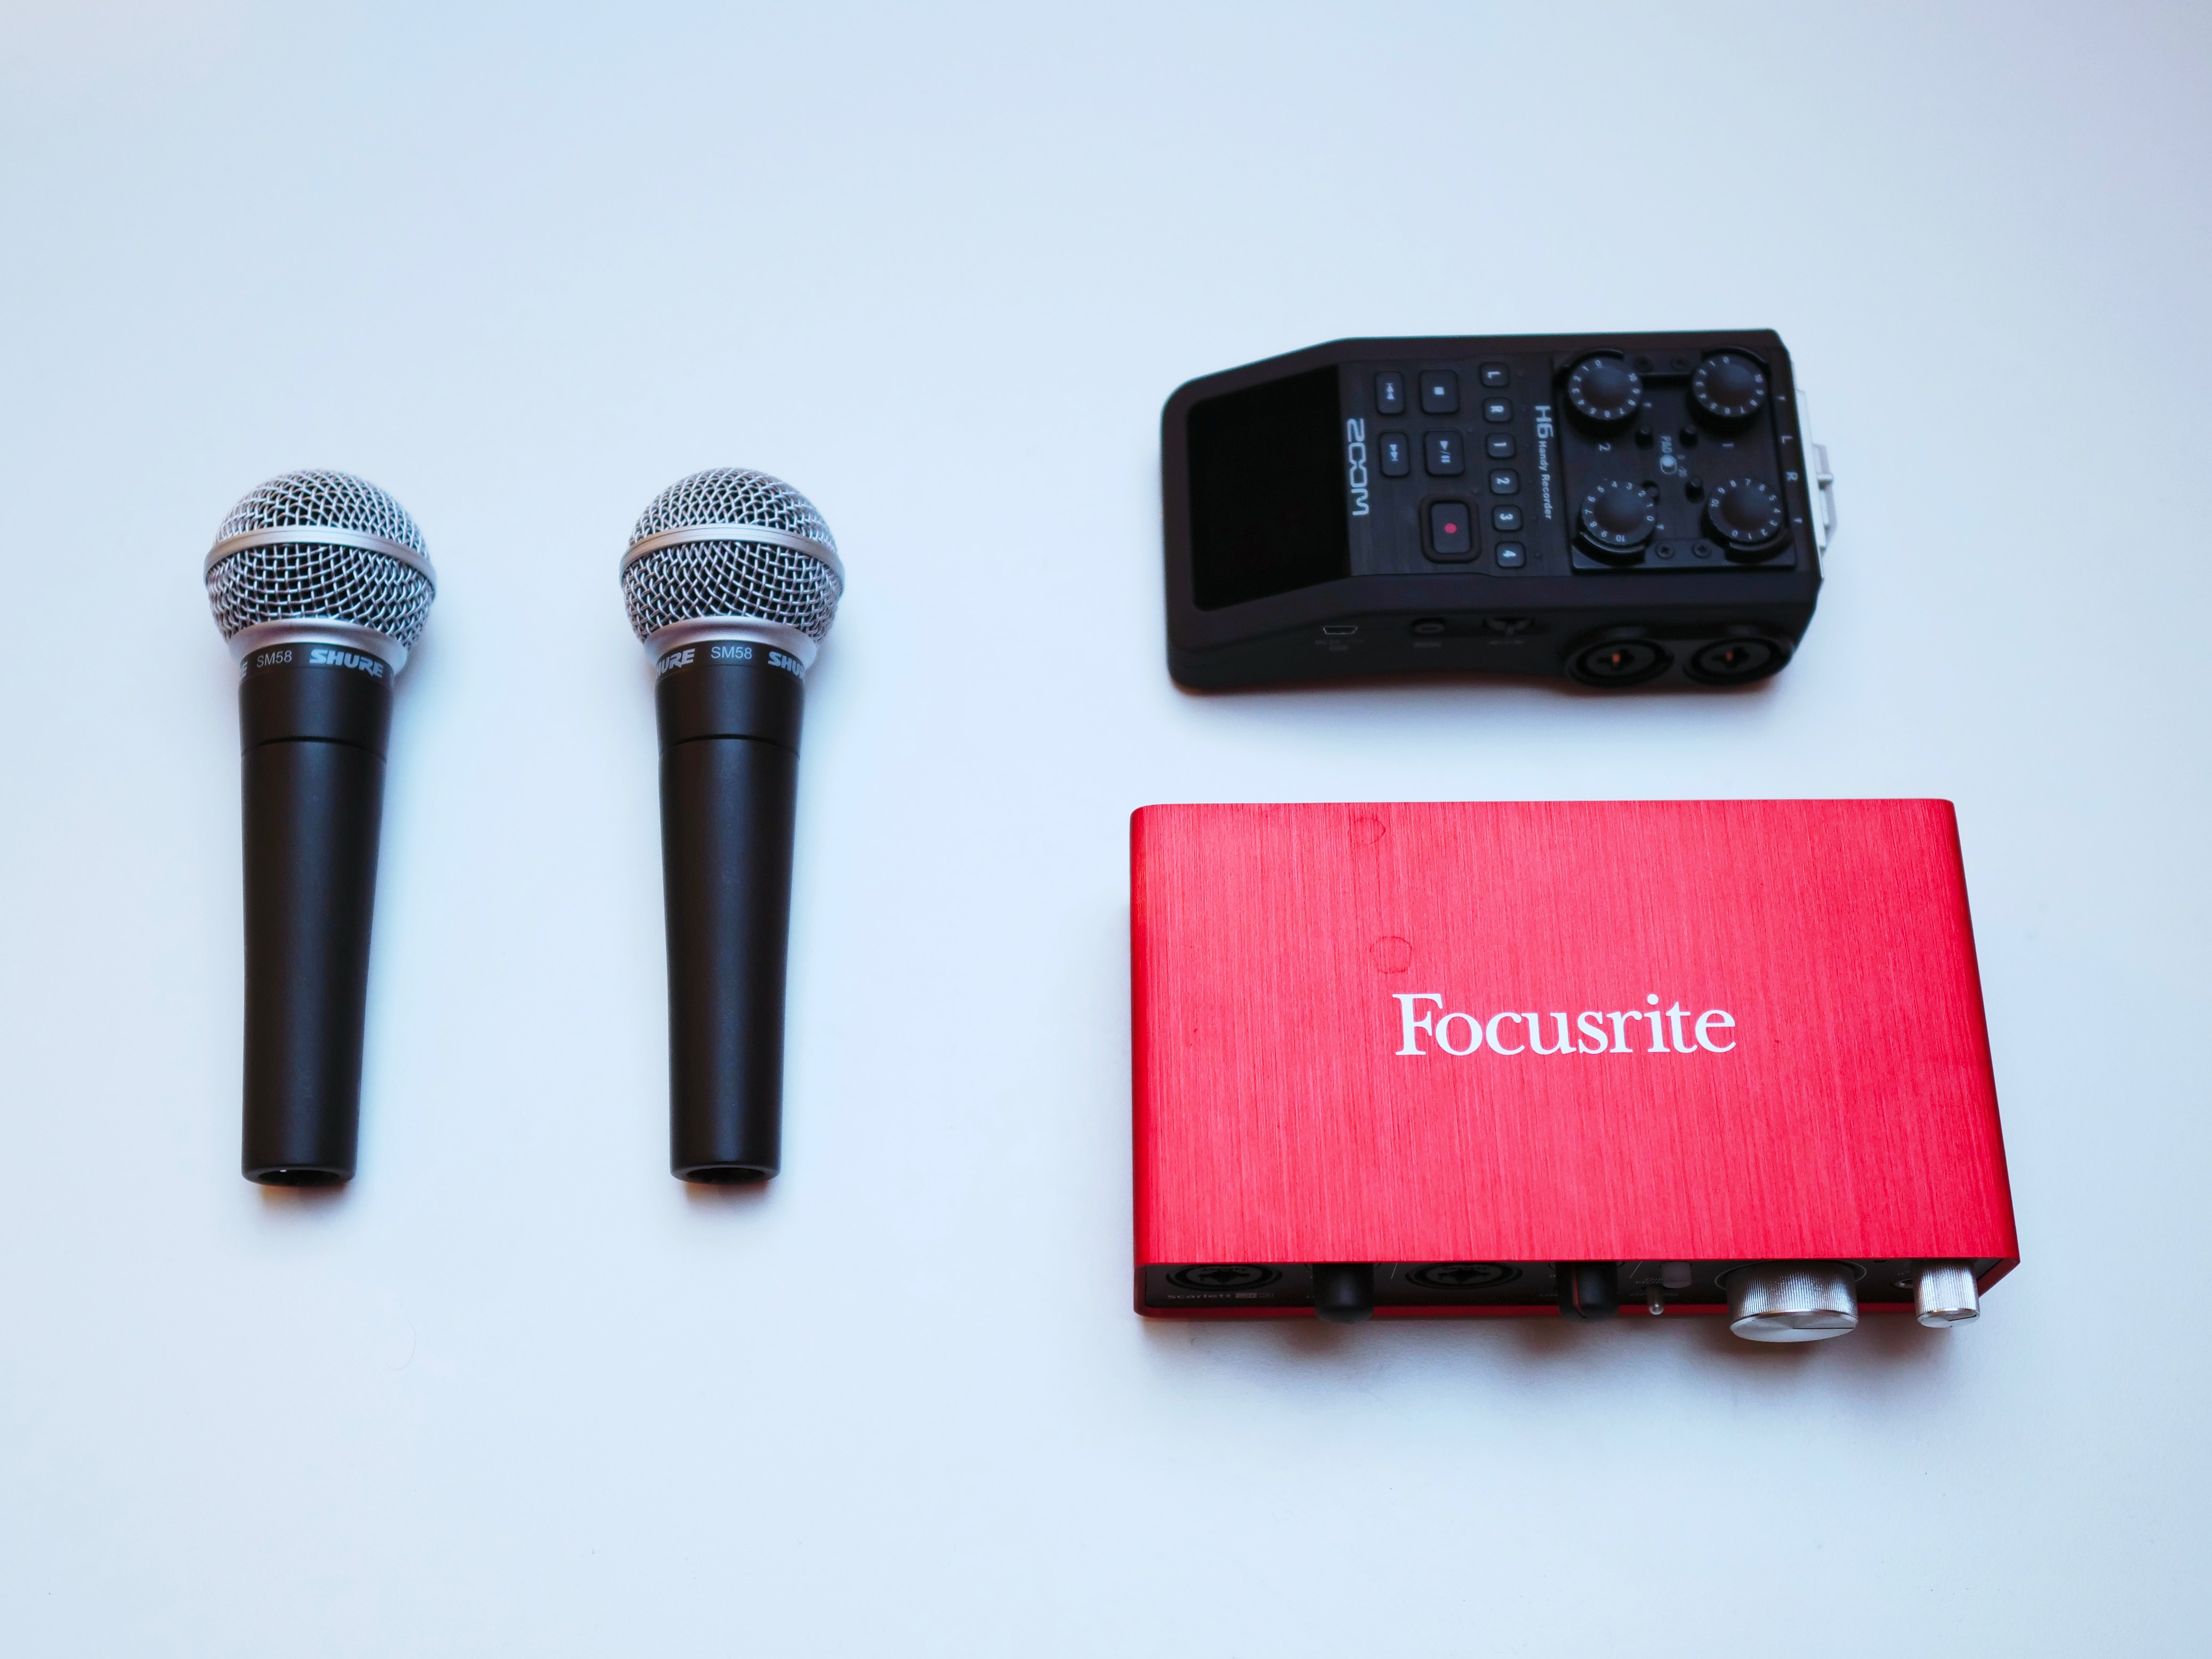 Essential Podcast Recording tools Focusrite Scarlett, 2 Microphones, a Zoom Hand Held Recorder